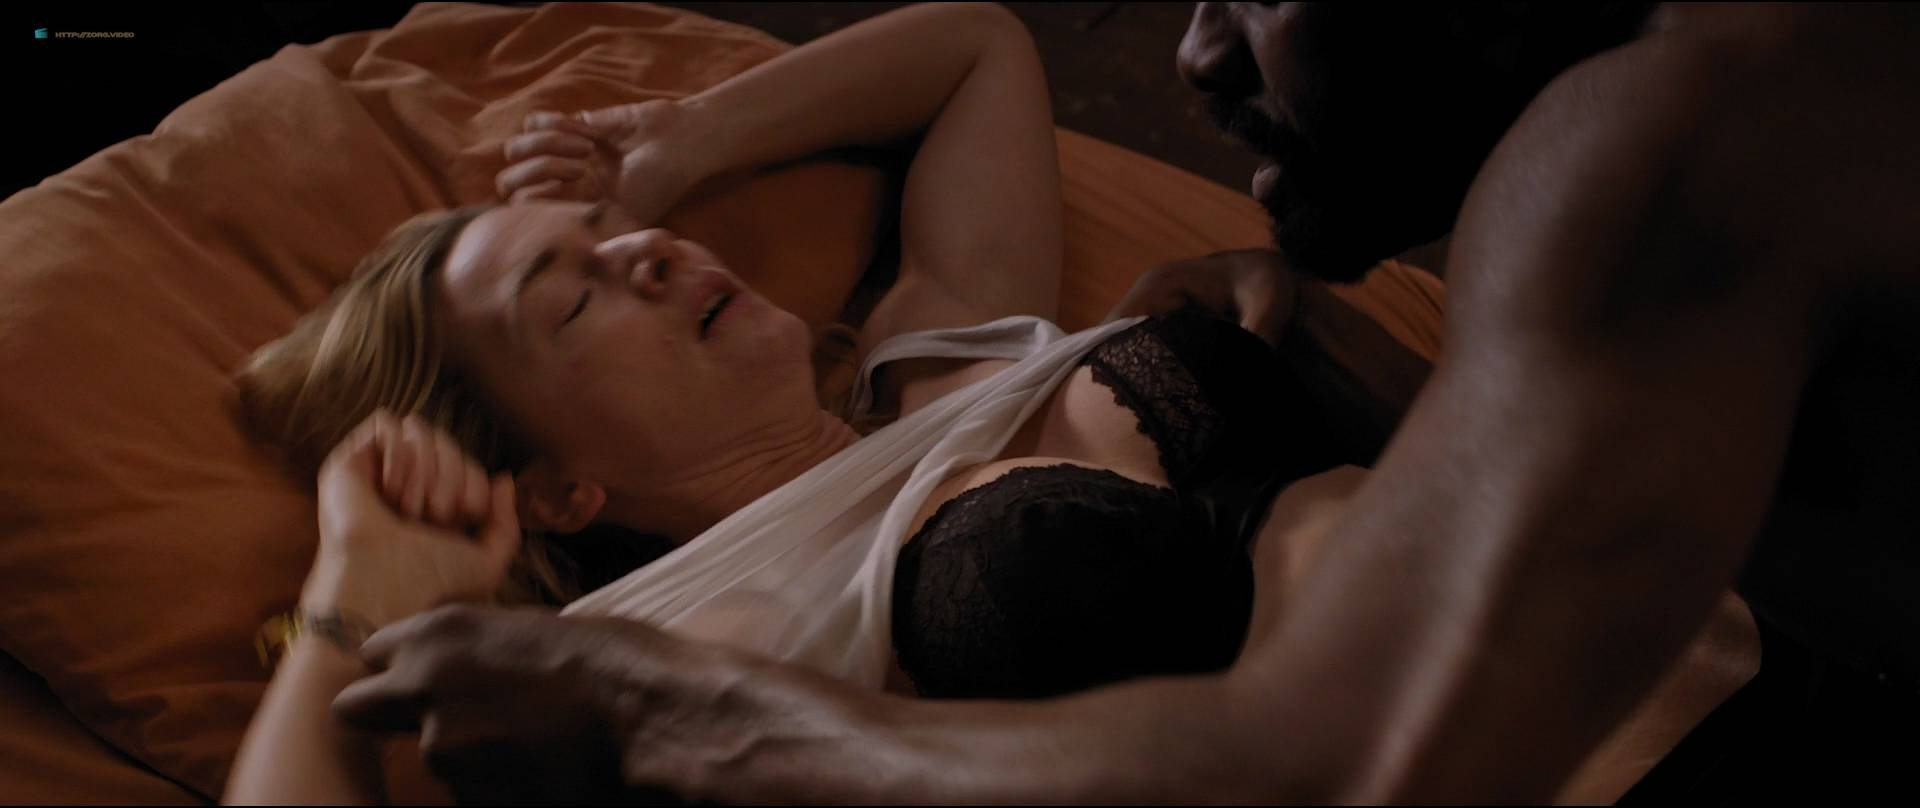 Kate-Winslet-hot-and-some-sex-The-Mountain-Between-Us-2017-HD-1080p-BluRay-03.jpg